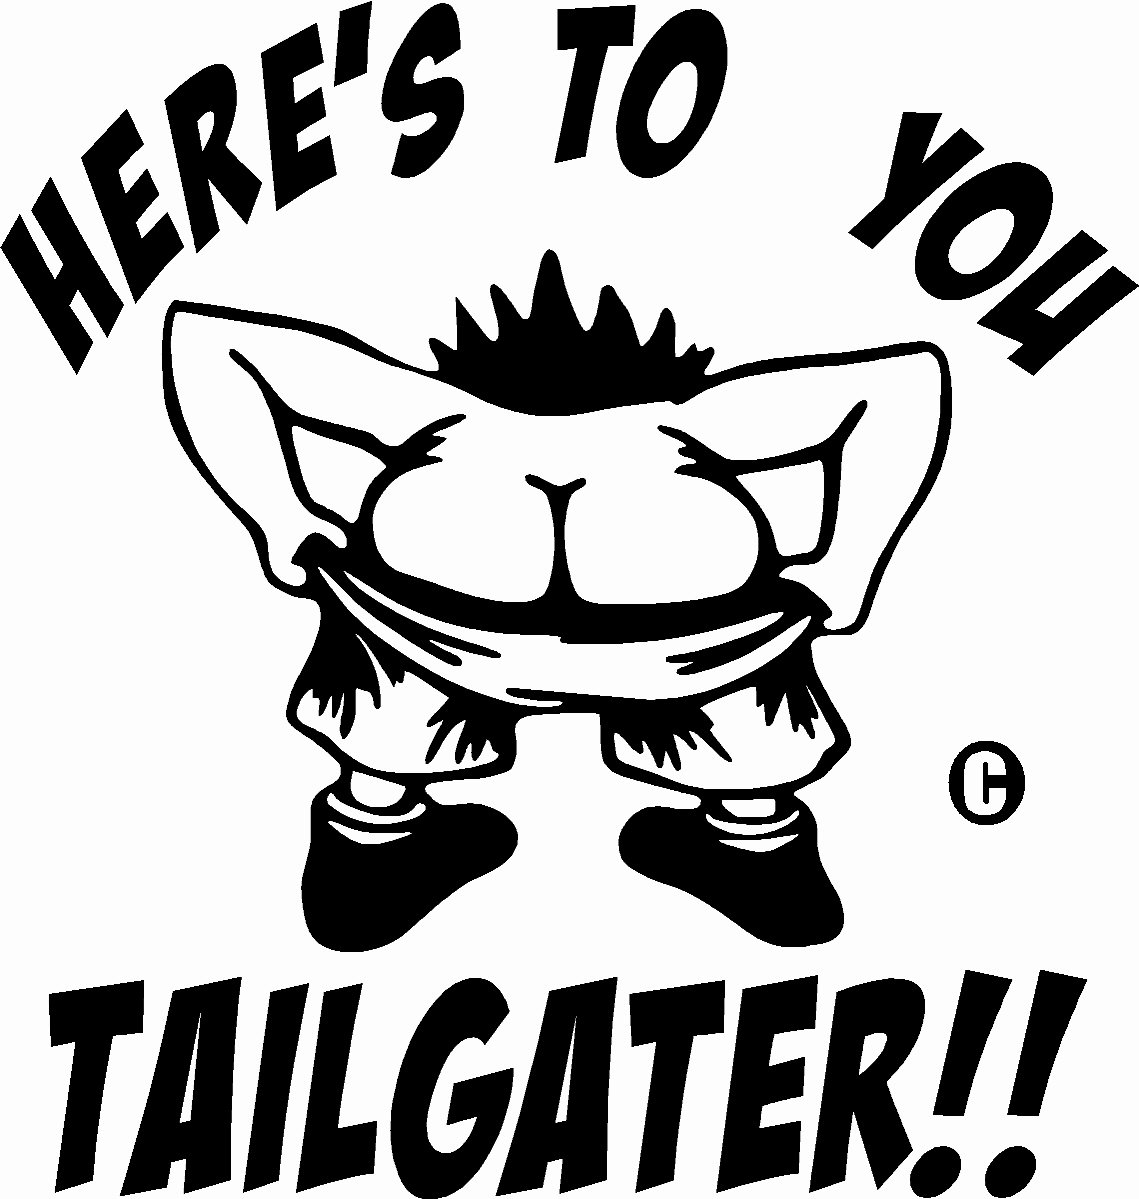 Tailgating tailgater funny vinyl decal sticker